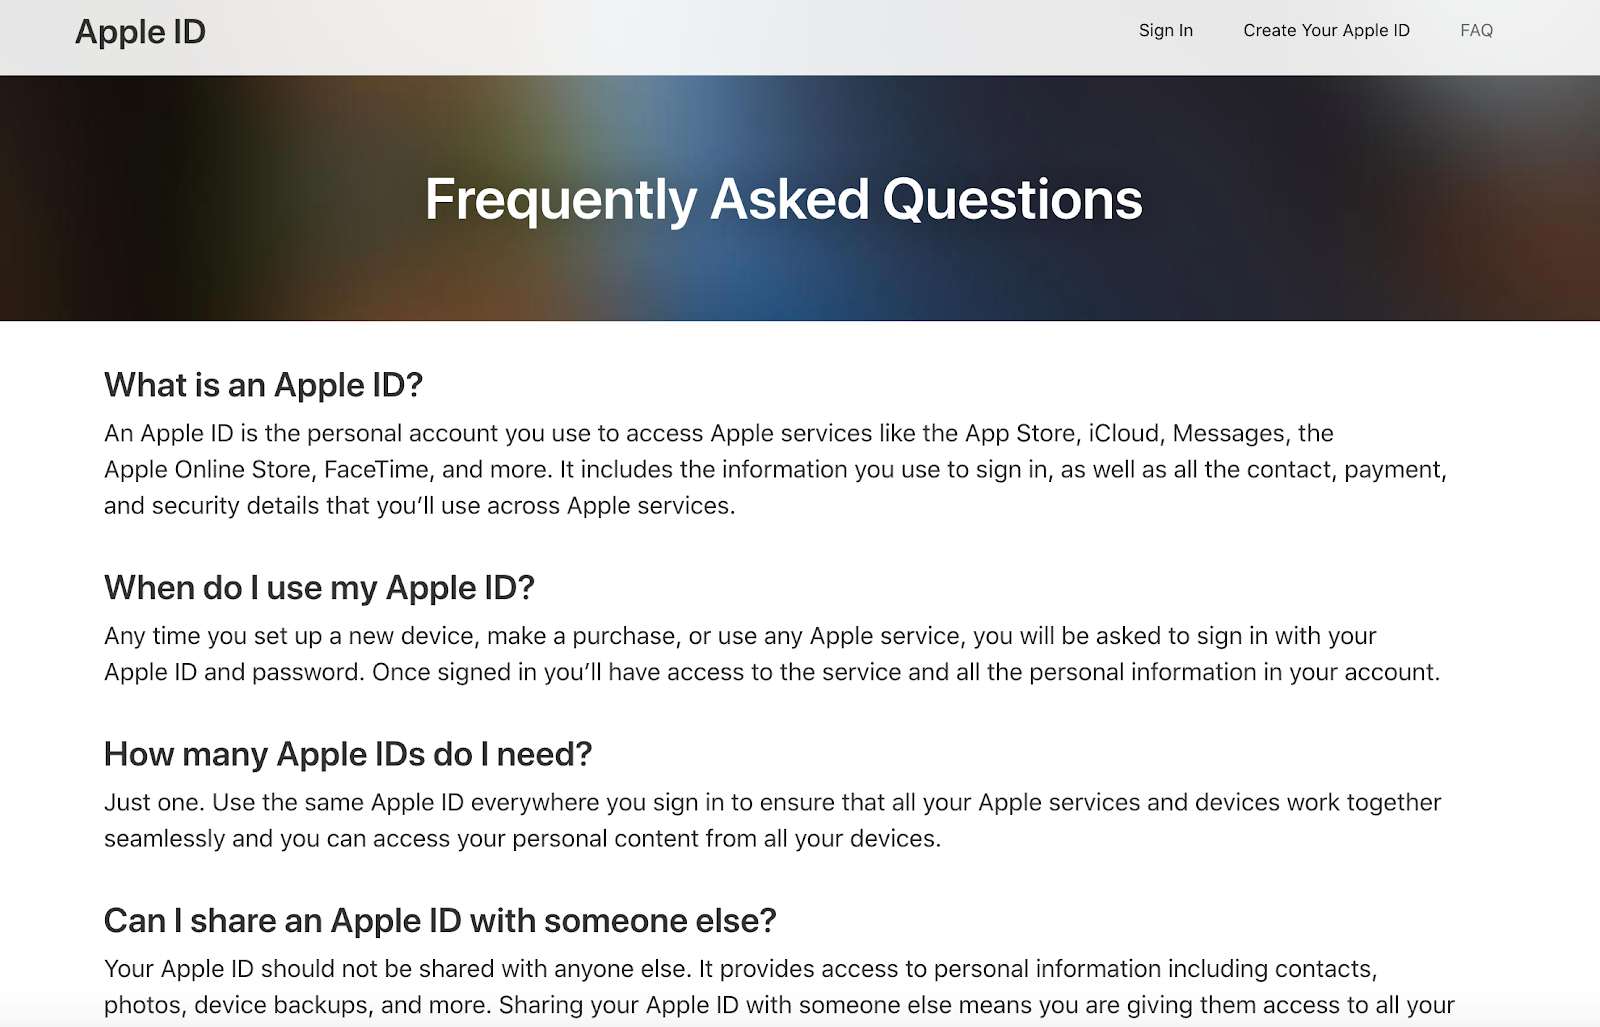 apple faq self-service